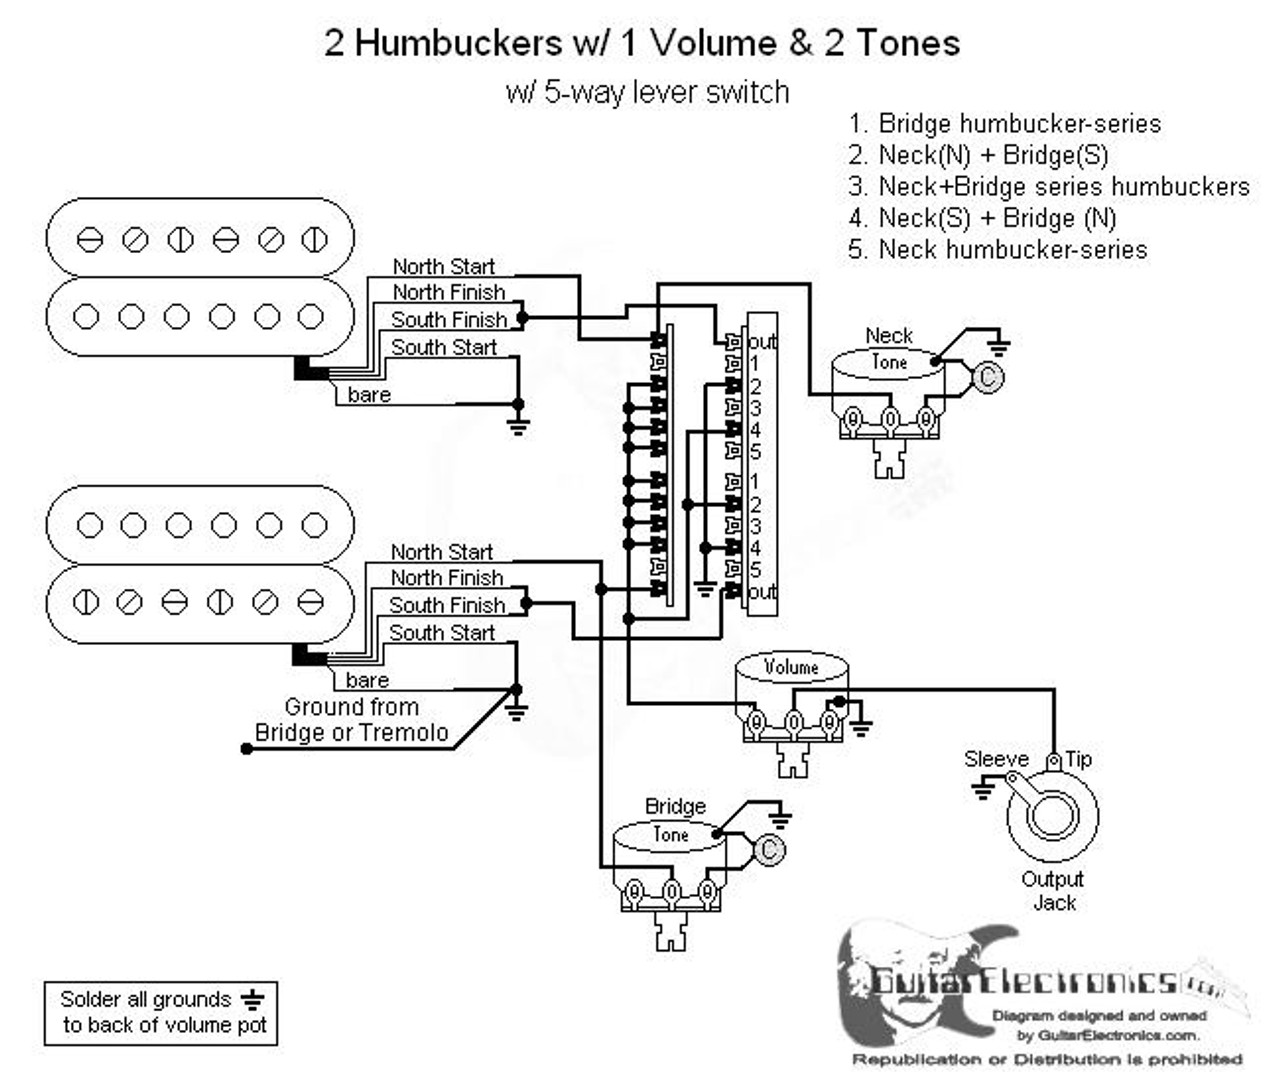 small resolution of 2 humbuckers 5 way lever switch 1 volume 2 tones 05 2 volume 1 tone 5 way switch wiring diagram